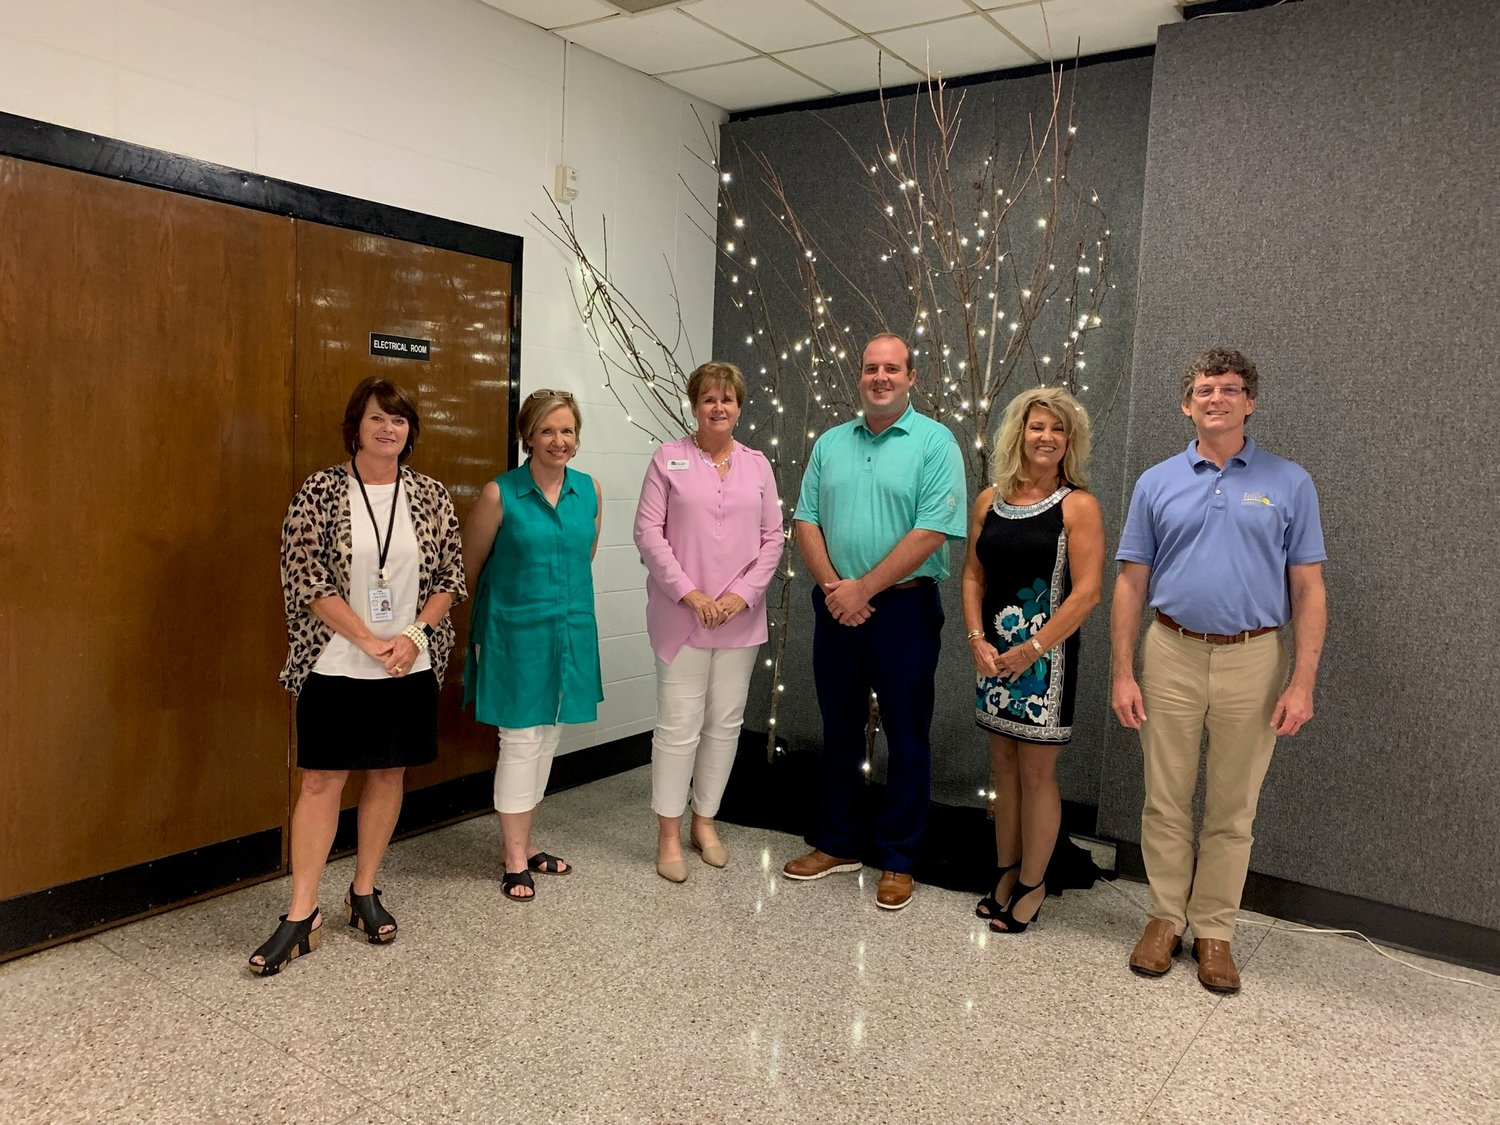 From left to right: Sherry Sullivan, Chair Design Committee; Deborah Mixon, committee member; Darrelyn Dunmore, Foley Main Street Executive Director; Casey Rodden, Treasurer of Baldwin County Trailblazers, Inc.; Brenda Shambo, committee member; and City of Foley Councilman Charlie Ebert.